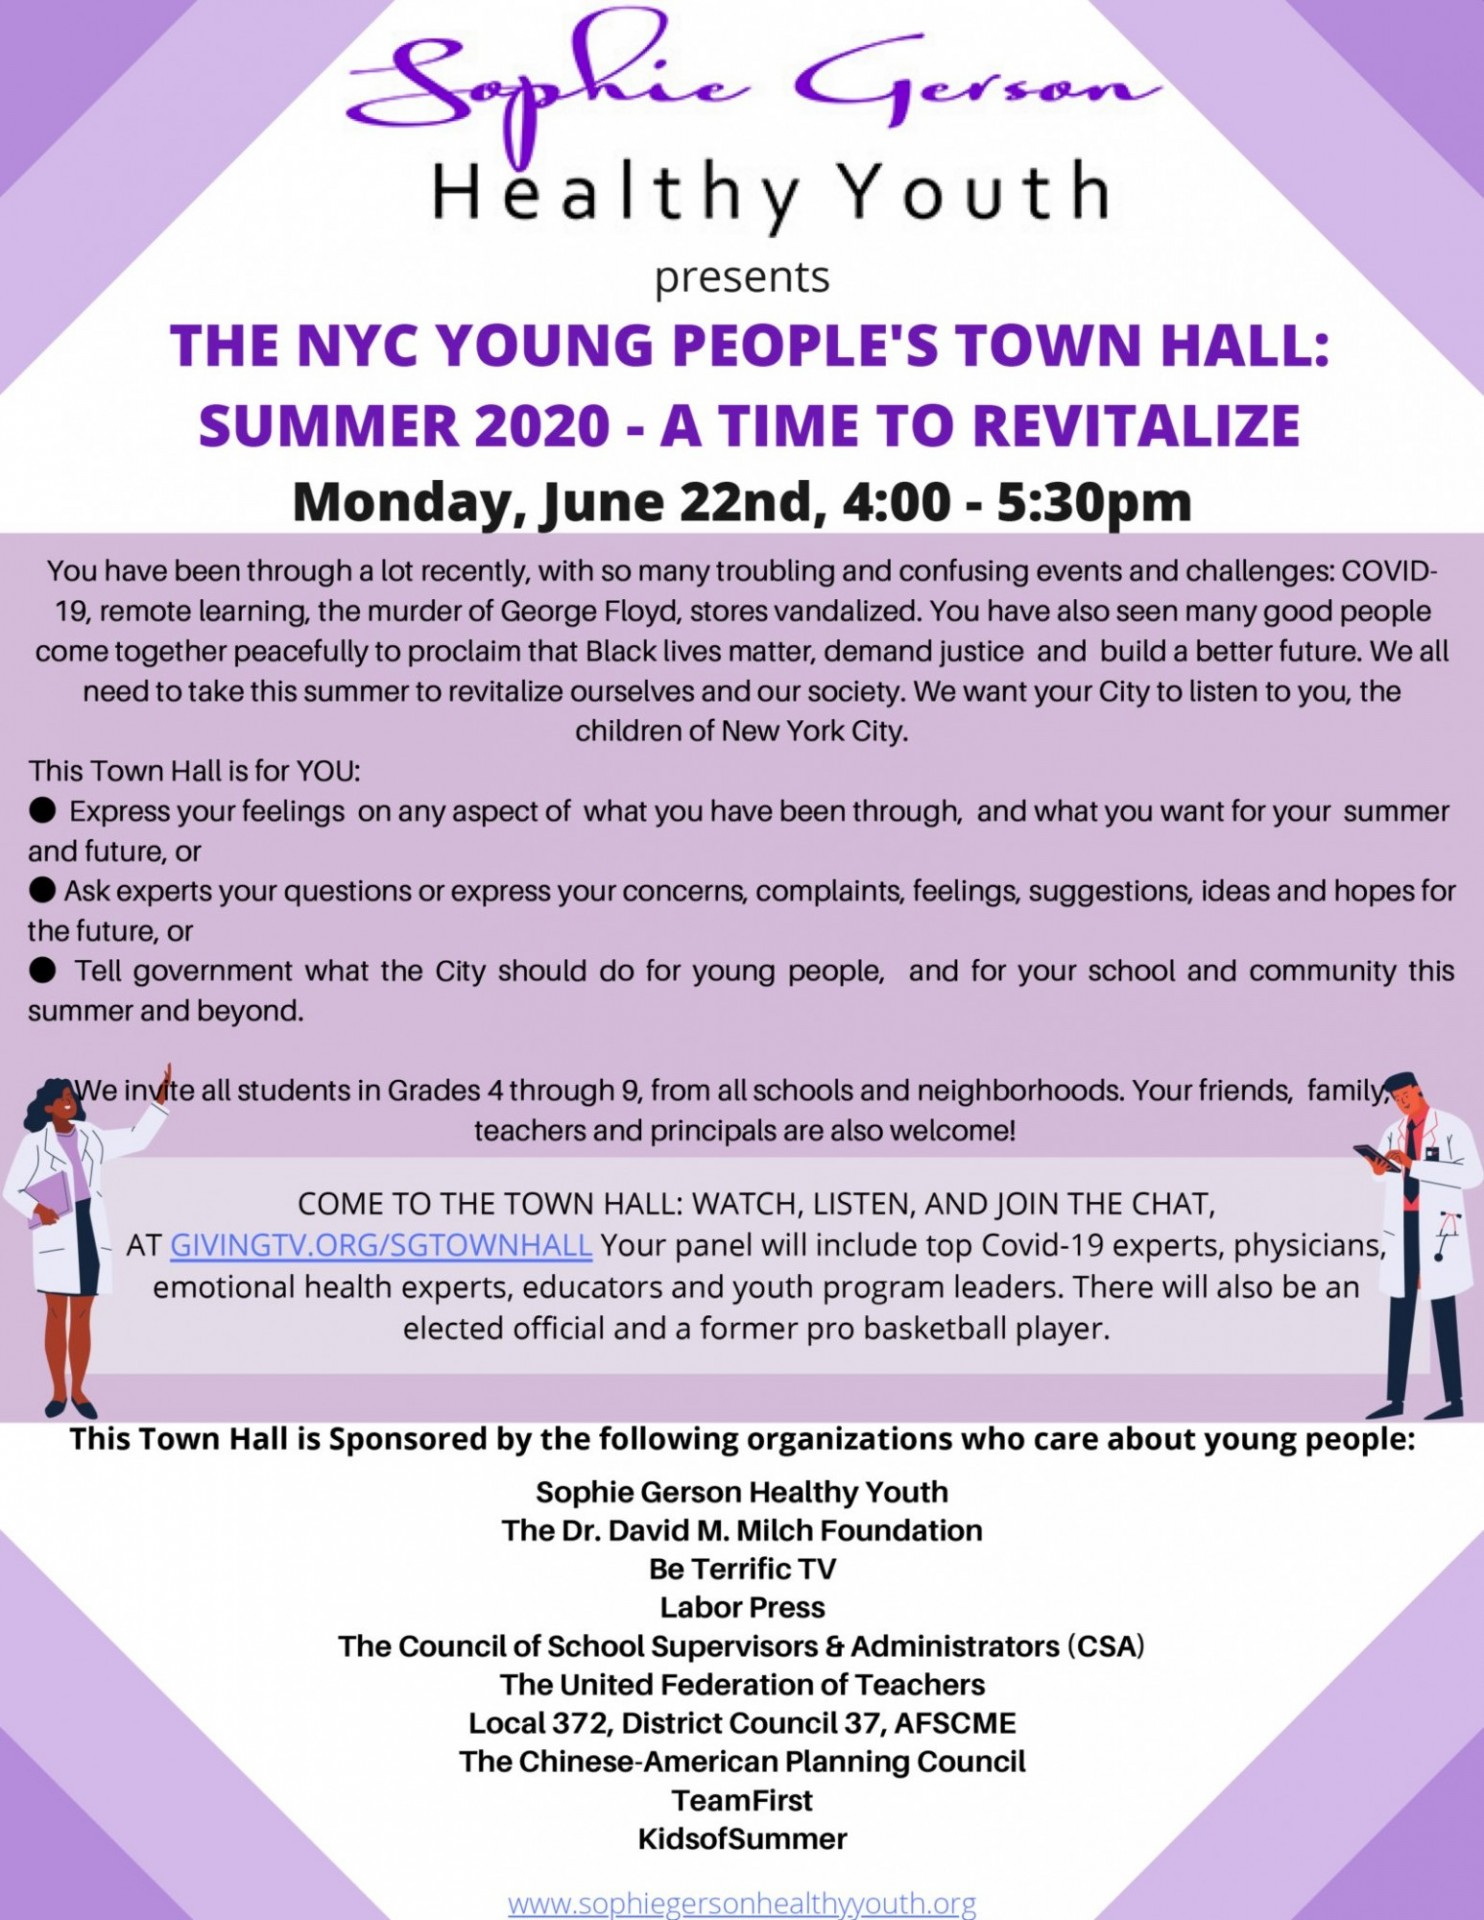 Sophie Gerson Young People's Town Hall